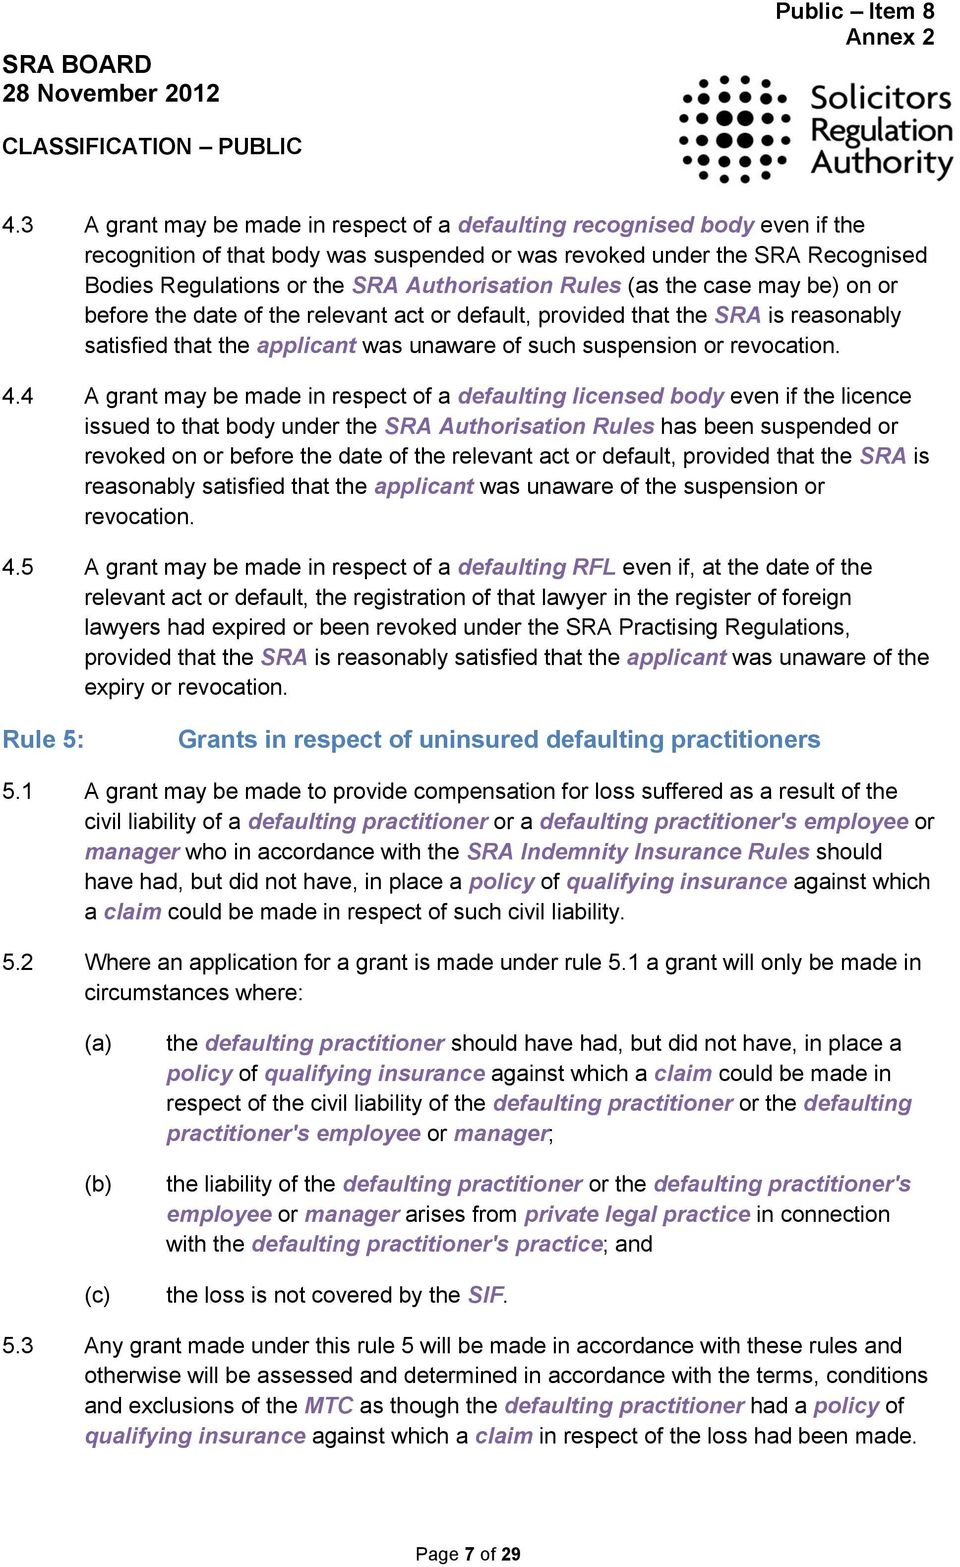 Rules (as the case may be) on or before the date of the relevant act or default, provided that the SRA is reasonably satisfied that the applicant was unaware of such suspension or revocation. 4.